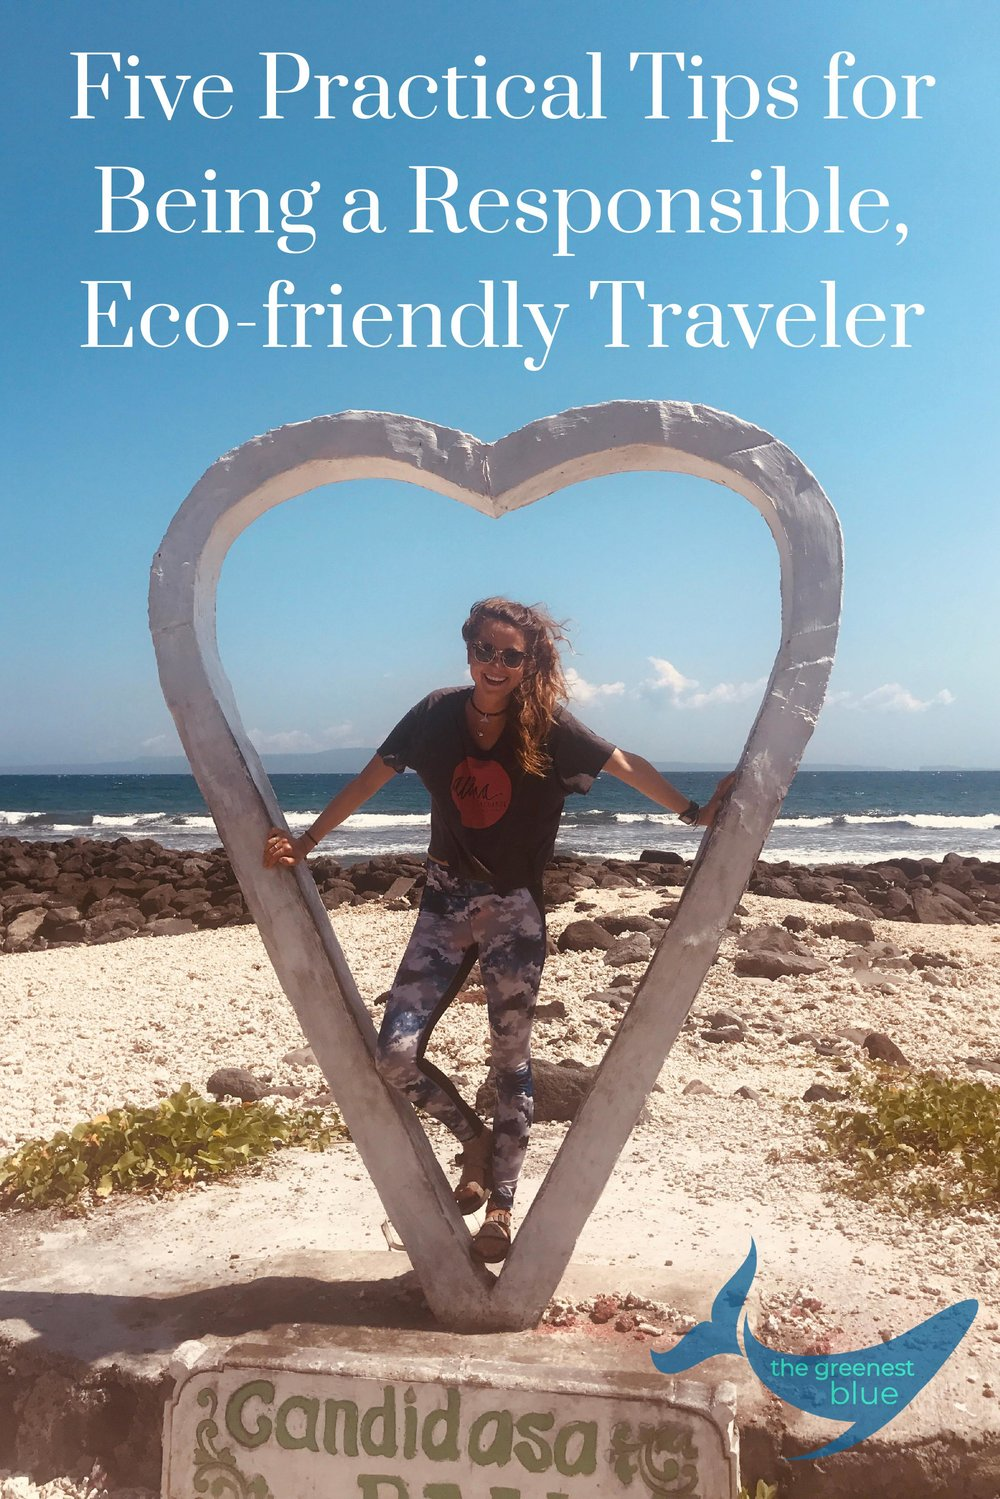 Love Bali - Top Five Tips for Being an Eco-Friendly Traveler on The Greenest Blue